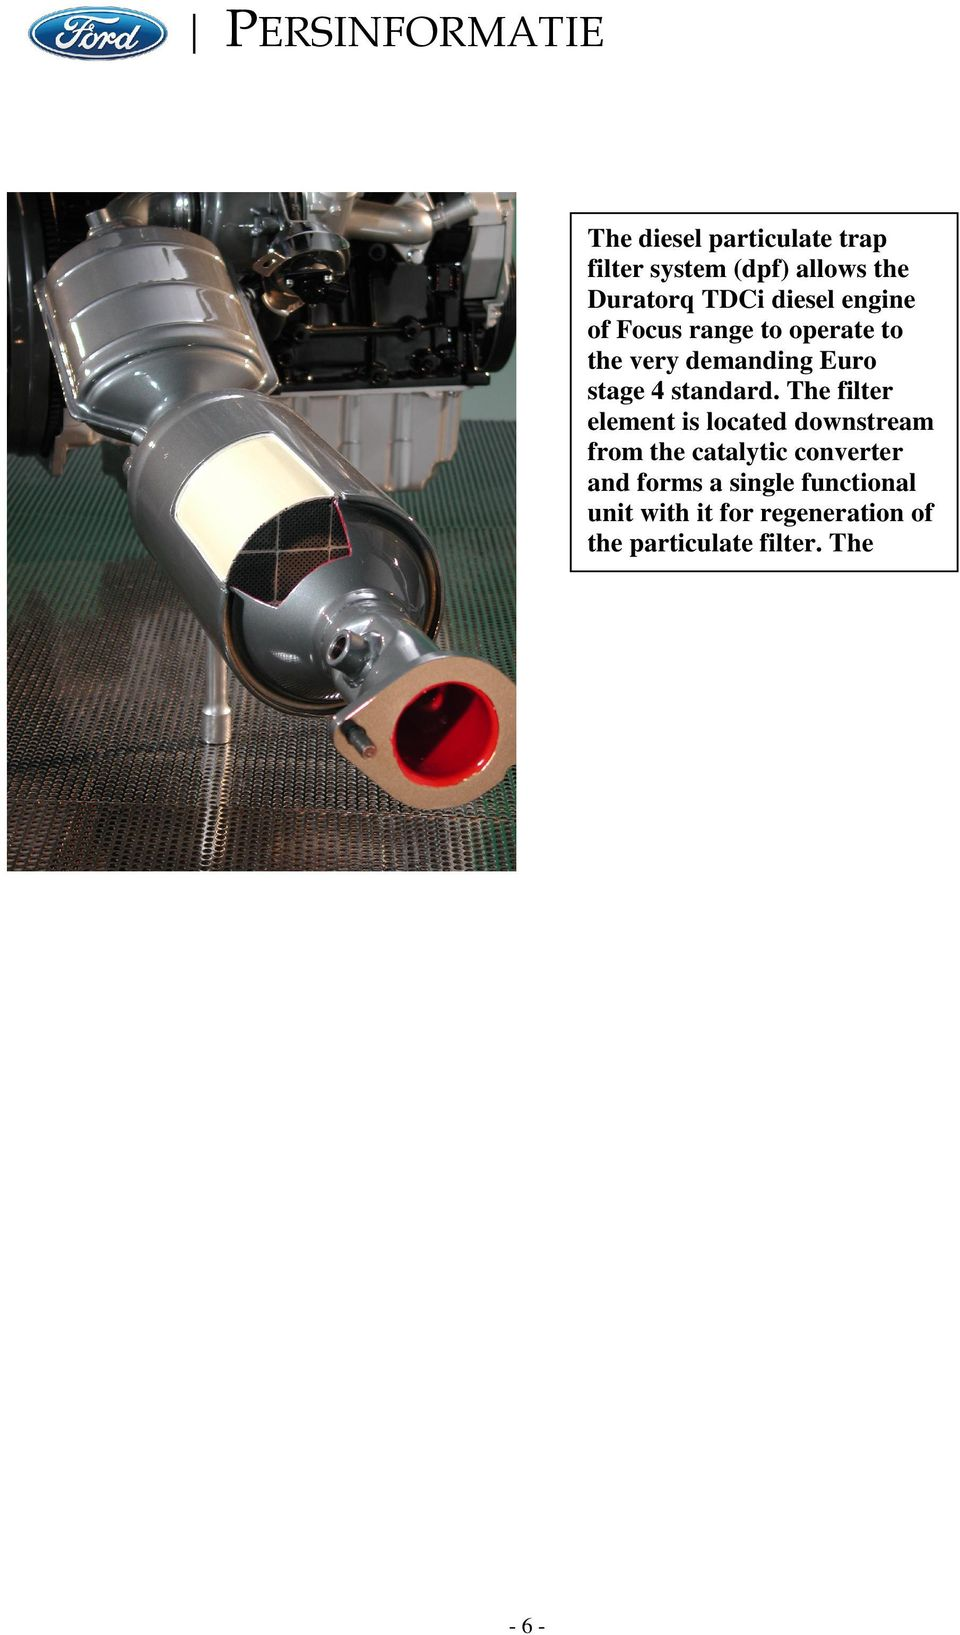 The filter element is located downstream from the catalytic converter and forms a